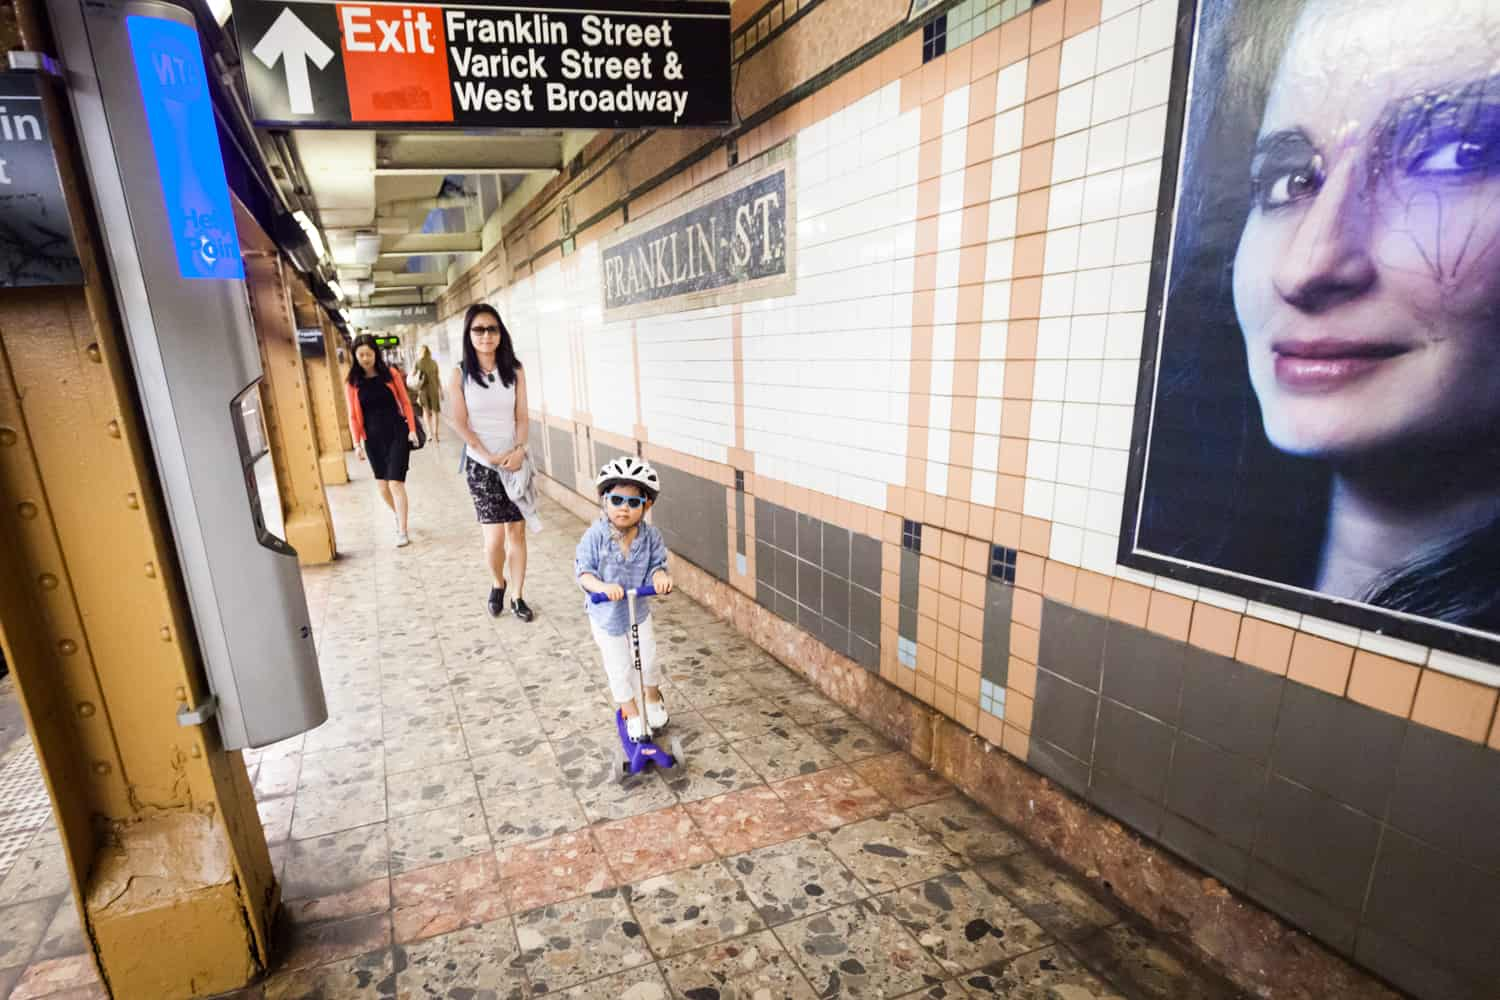 Mother and little boy walking on subway platform